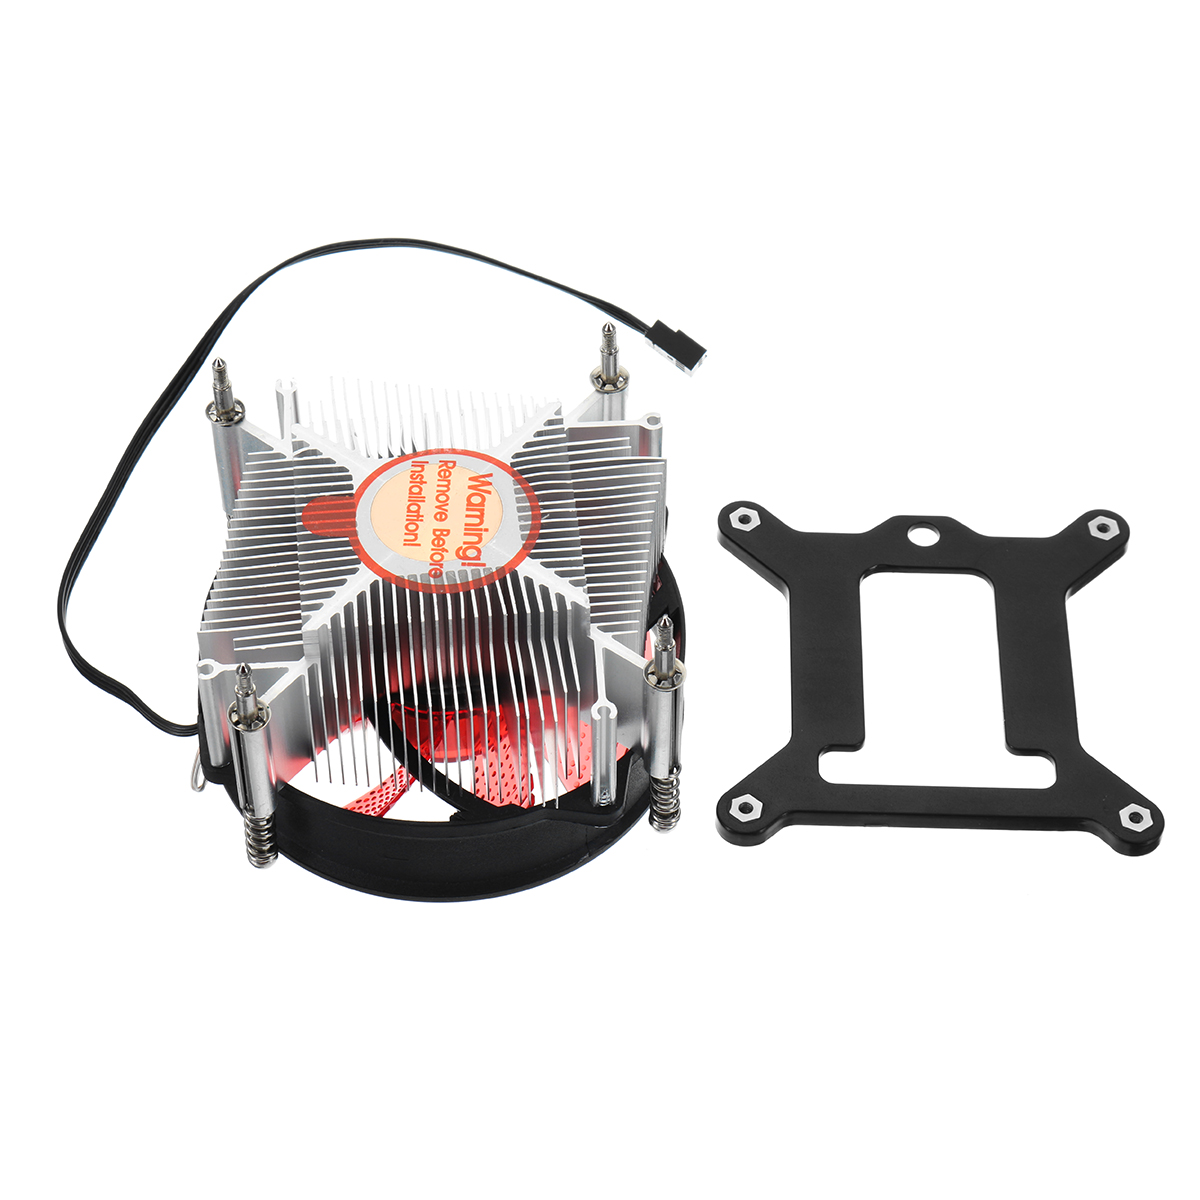 90*90*25mm 4Pin 12V Red Blue Green LED CPU Cooler Cooling Fan for Intel 1150 1155 1156 1151